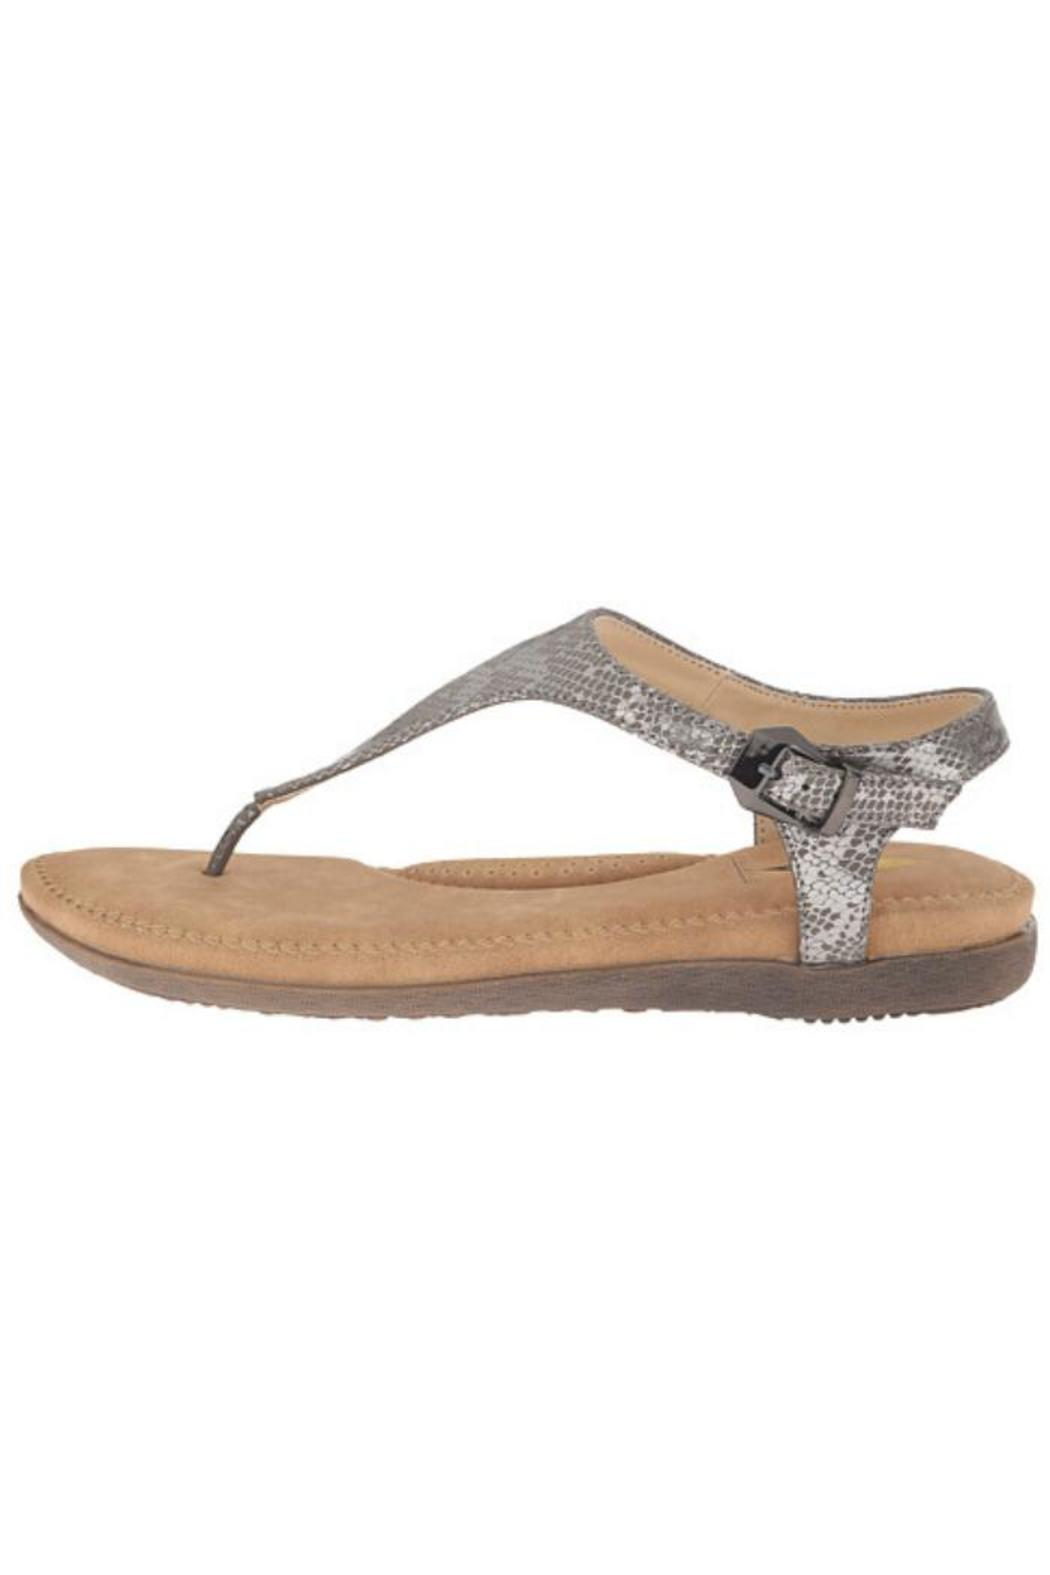 Volatile Reece Sandal From New Orleans By Nola Shoes Accessories